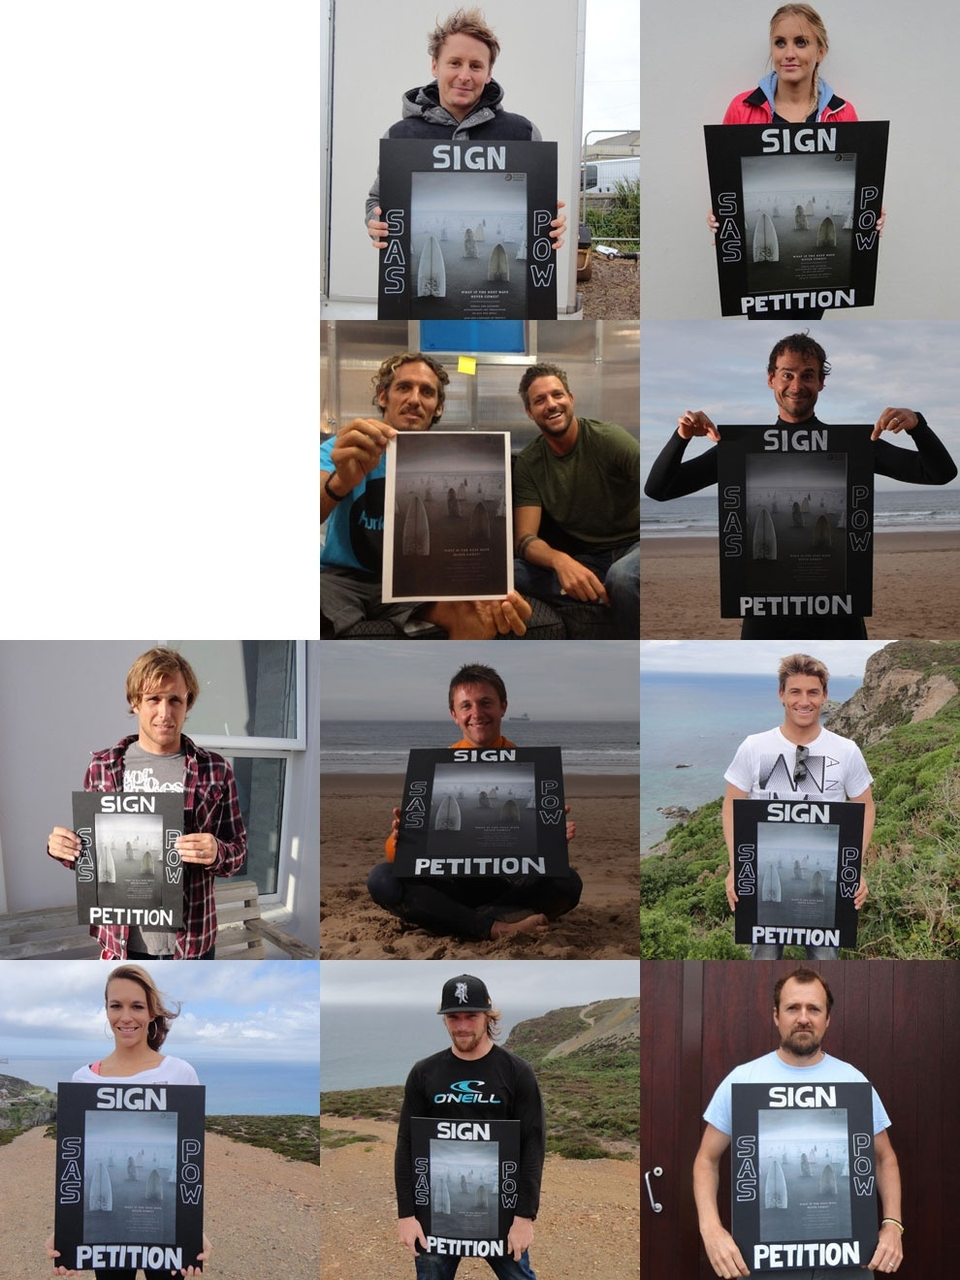 The campaign has already generated support amongst politicians, surfing industry leaders and musicians, including from music star and surfer Ben Howard (right), Caroline Lucas MP, Lord Taylor, four time British Surfing Champion Gabe Davies and nine time European longboard champion Ben Skinner.   Musician Ben Howard says